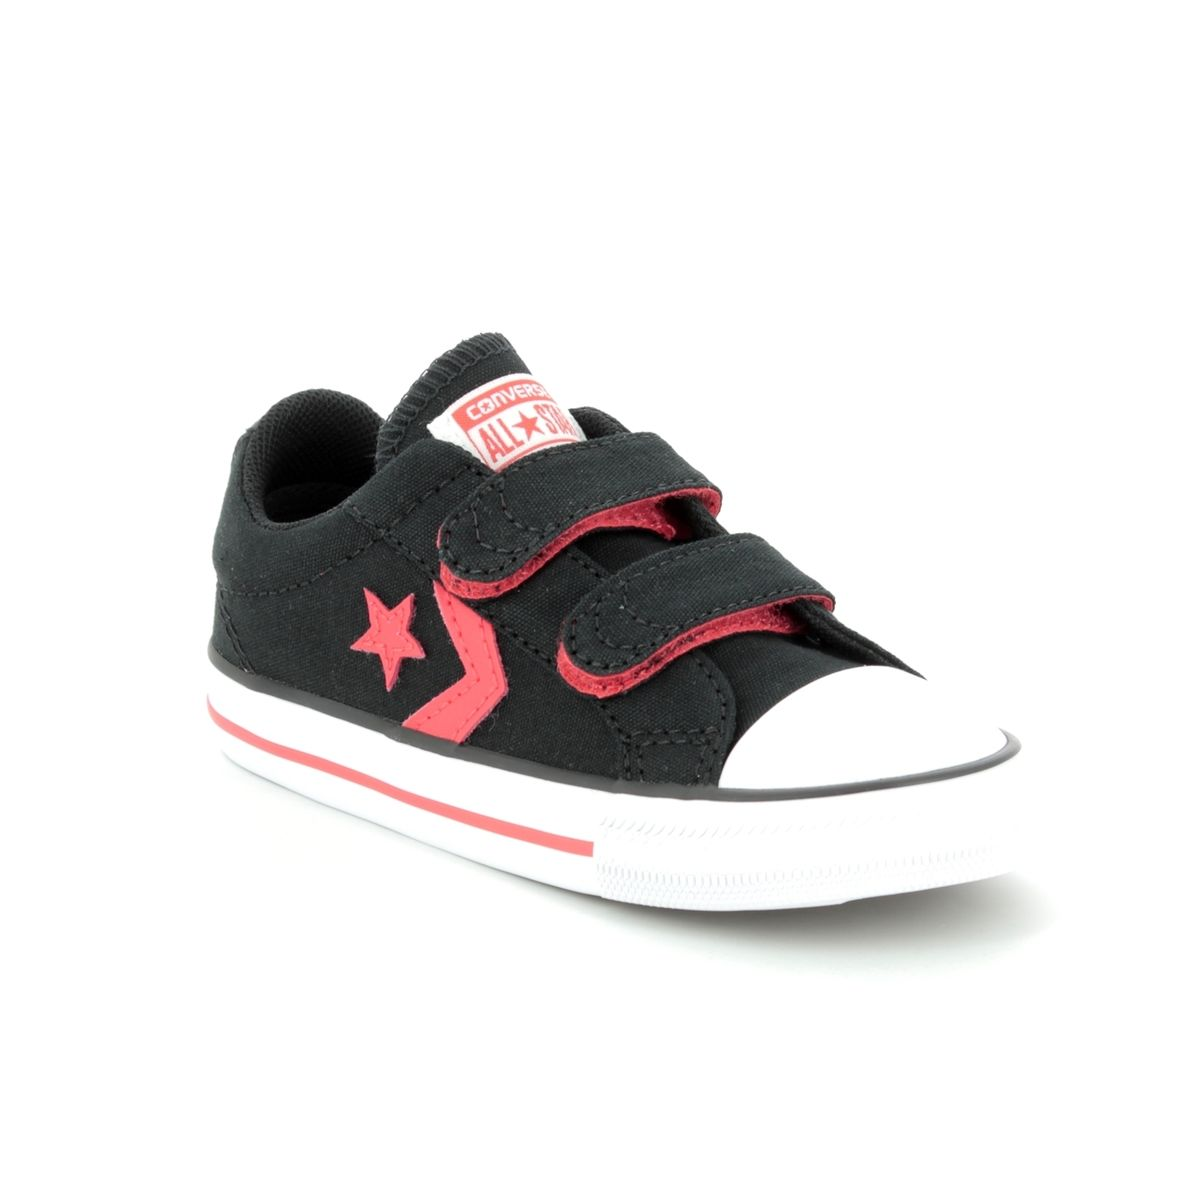 2a0c18765255f4 Converse Trainers - Black-red combi - 760036C STAR PLAYER VELCRO INFANTS